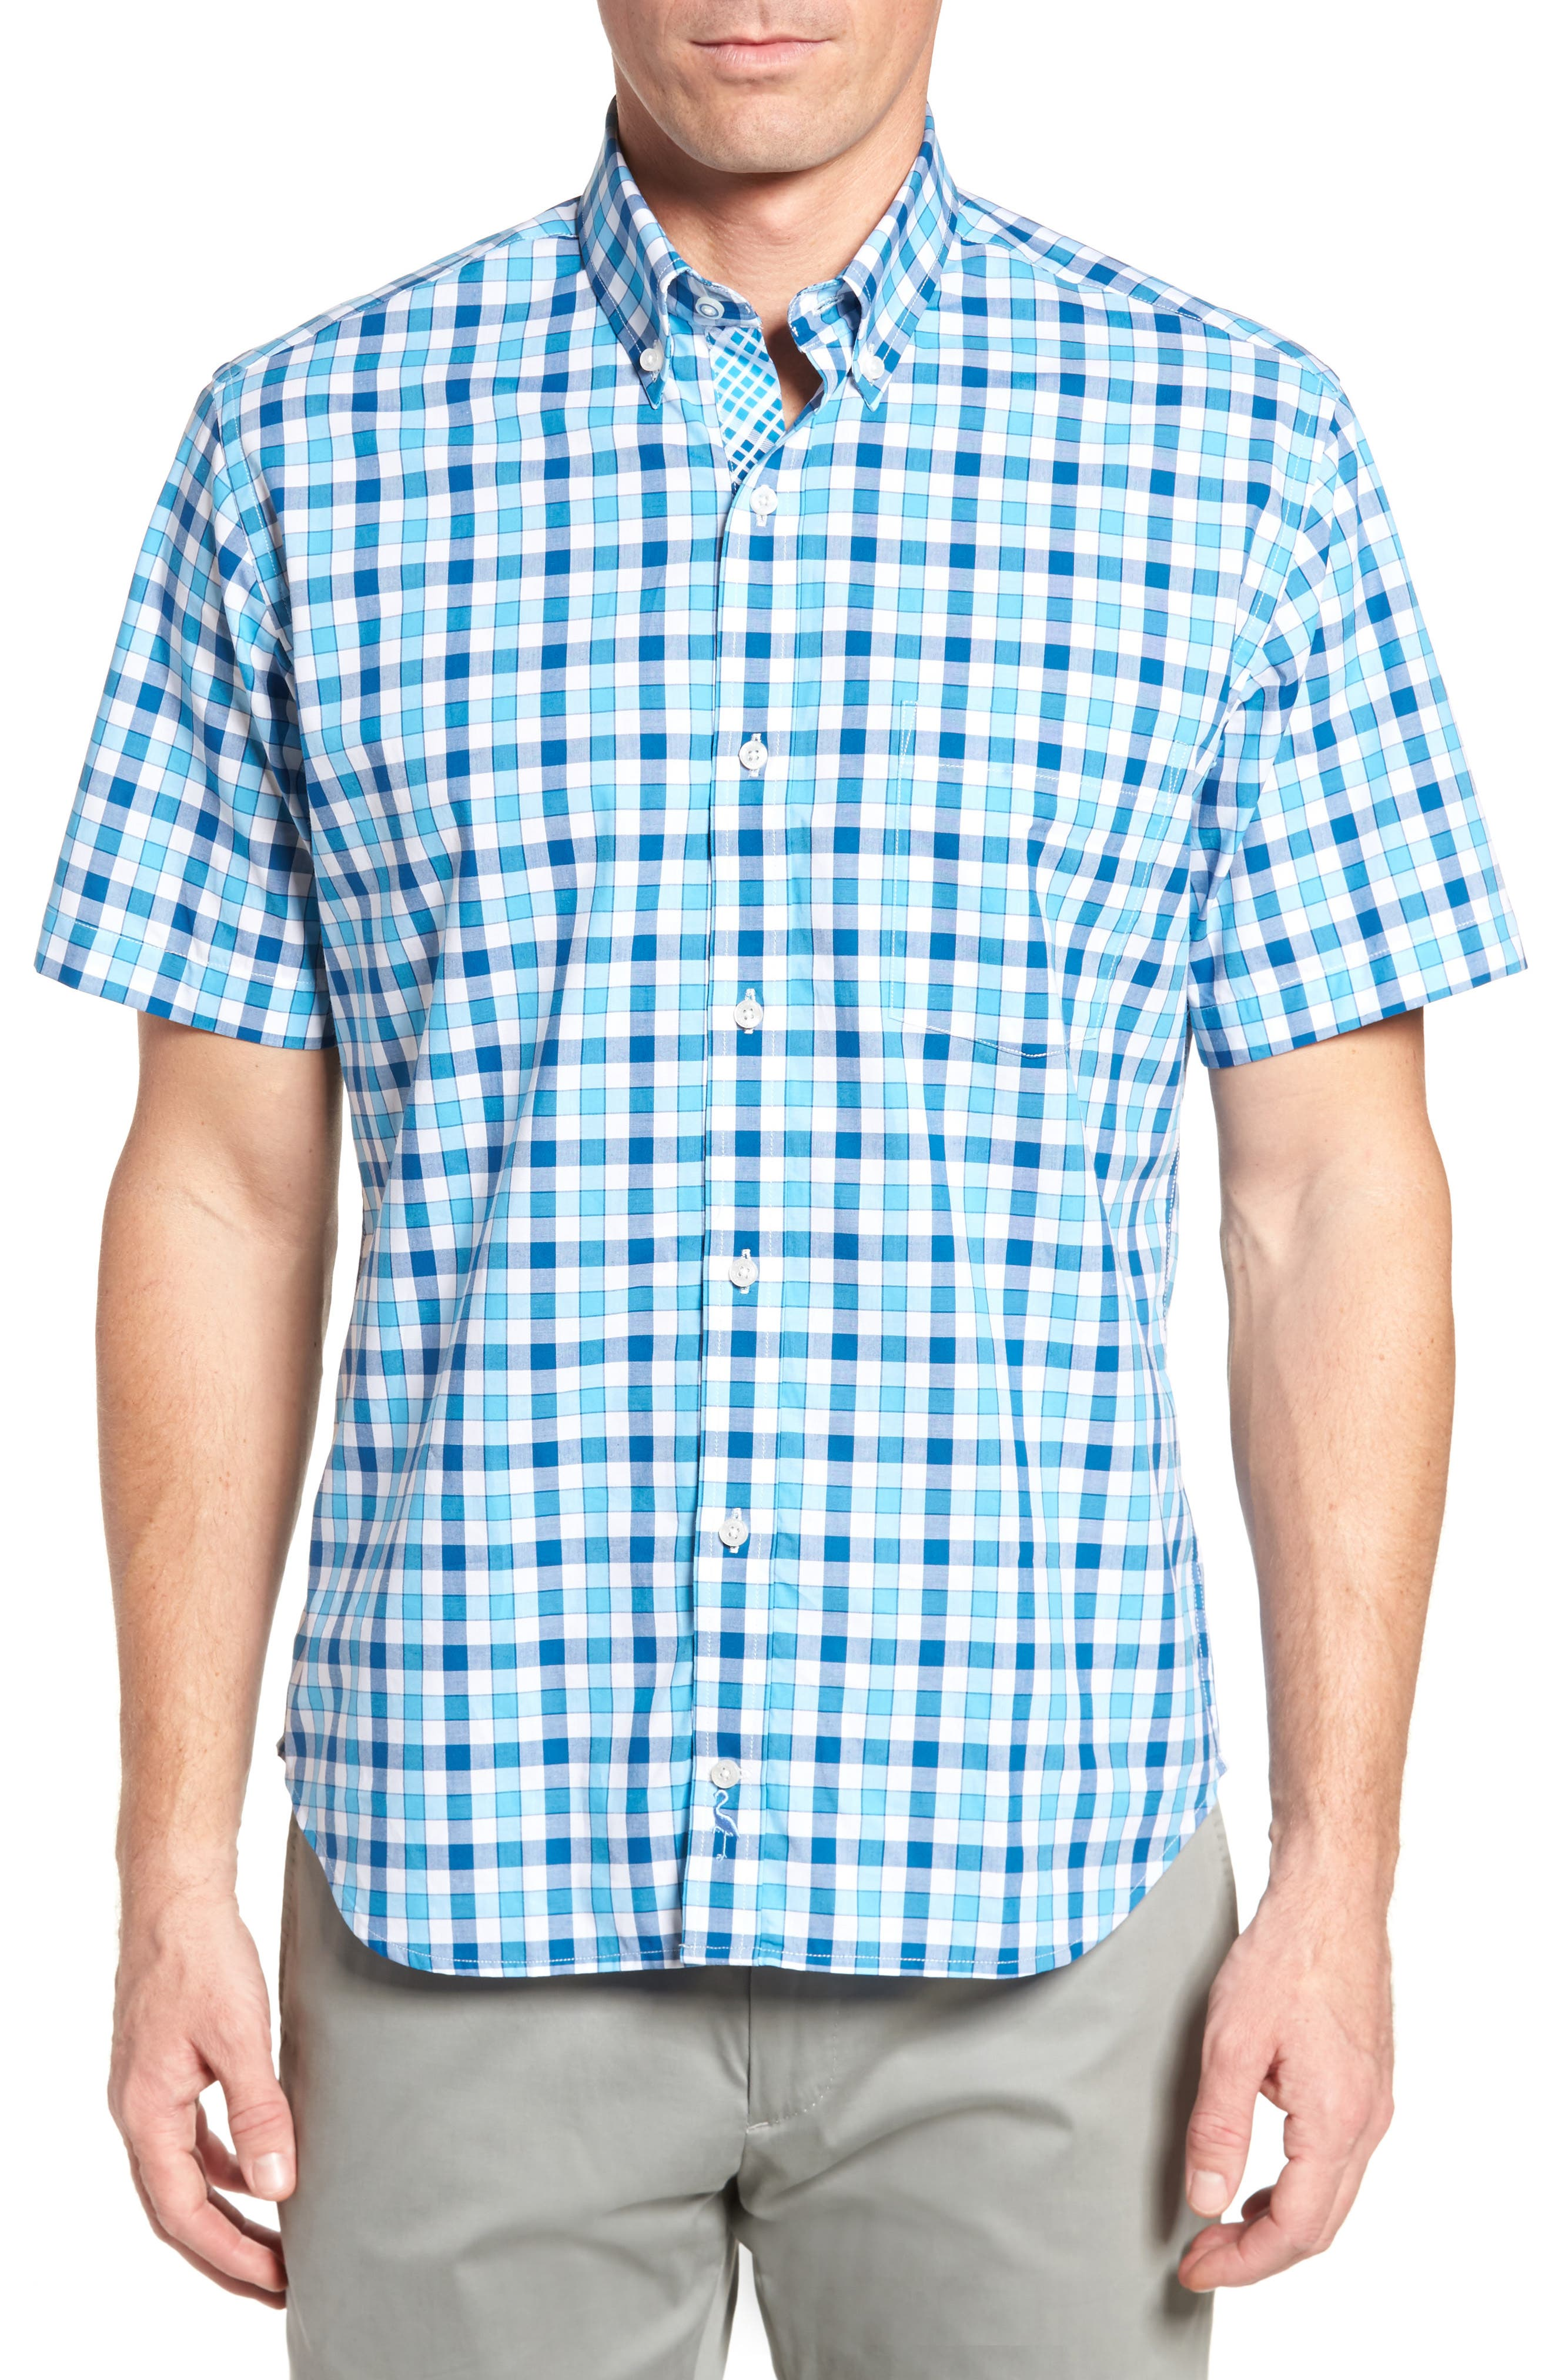 West We Go Regular Fit Plaid Sport Shirt,                             Main thumbnail 1, color,                             465